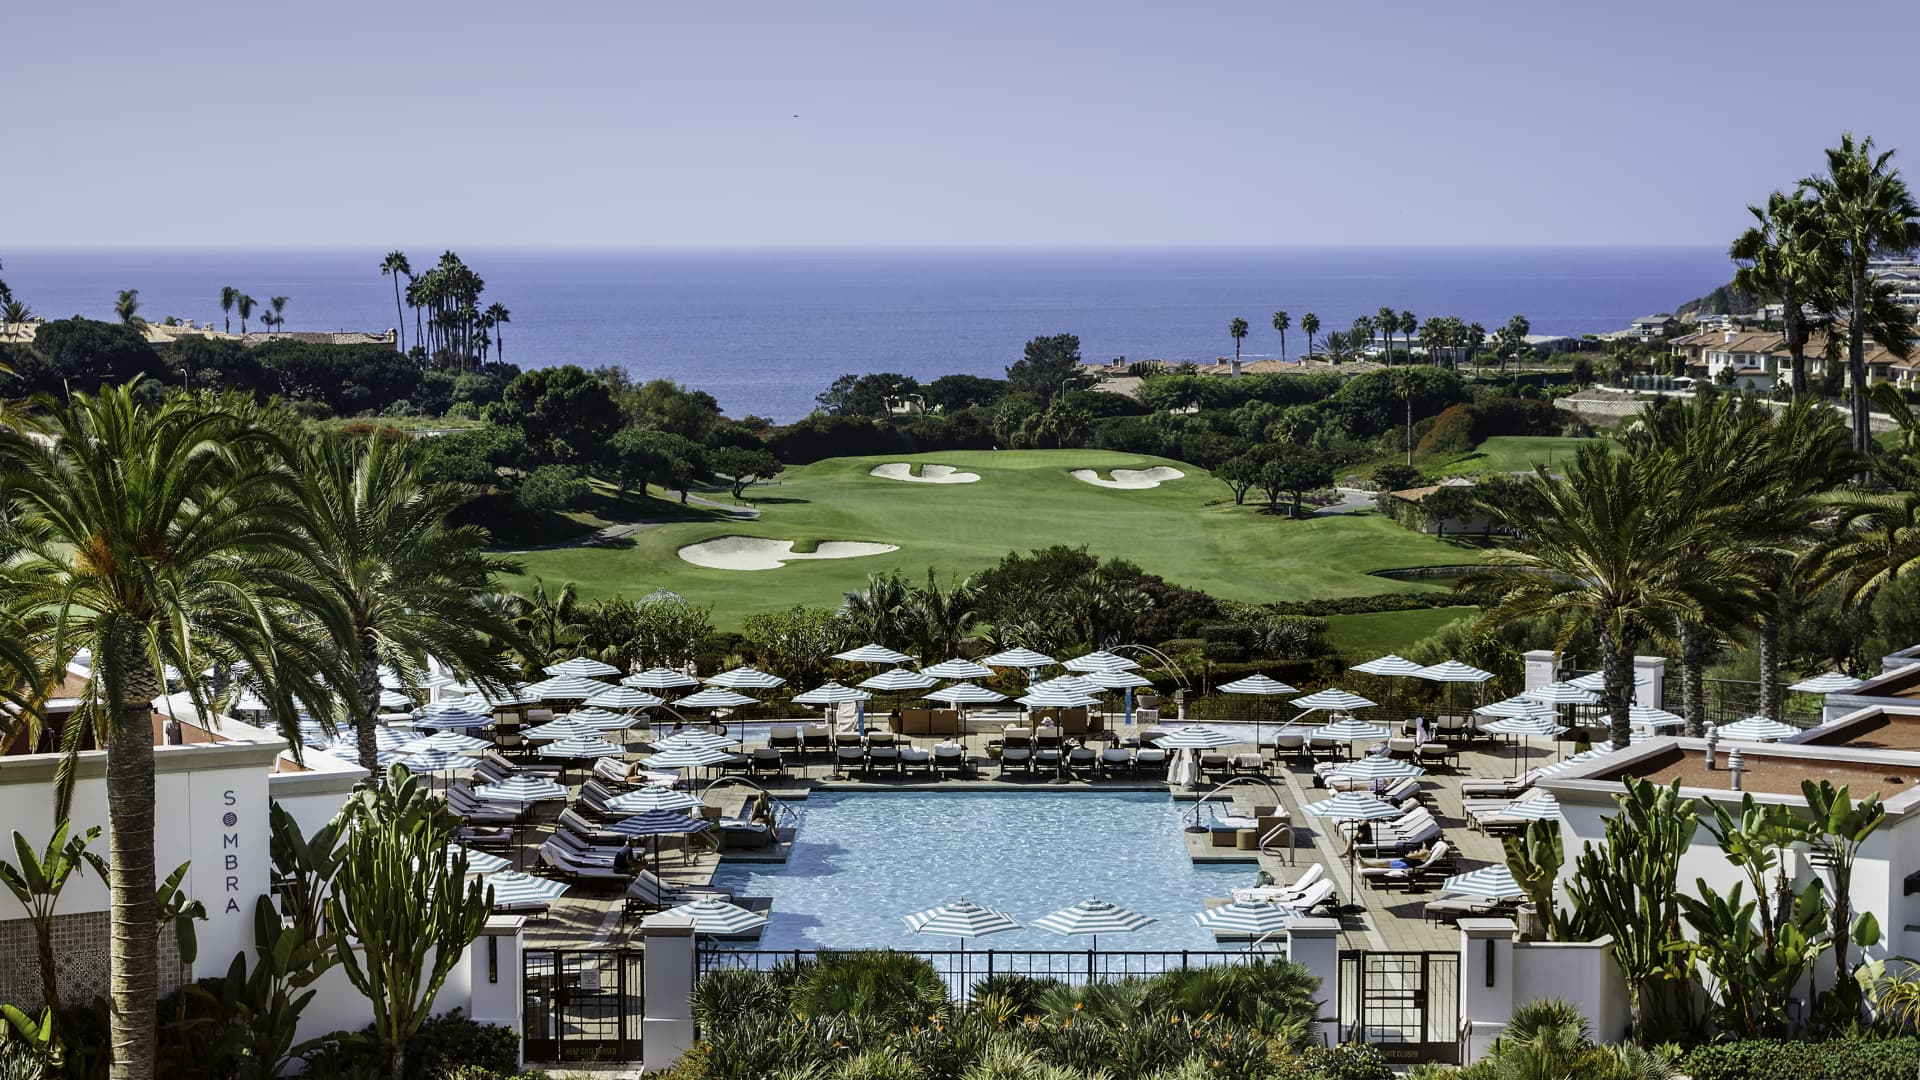 December bookings at high-end hotels, like the Waldorf Astoria Monarch Beach in Dana Point, California, will likely sell out sooner than they did in 2019, according to owner Ohana Real Estate Investors.